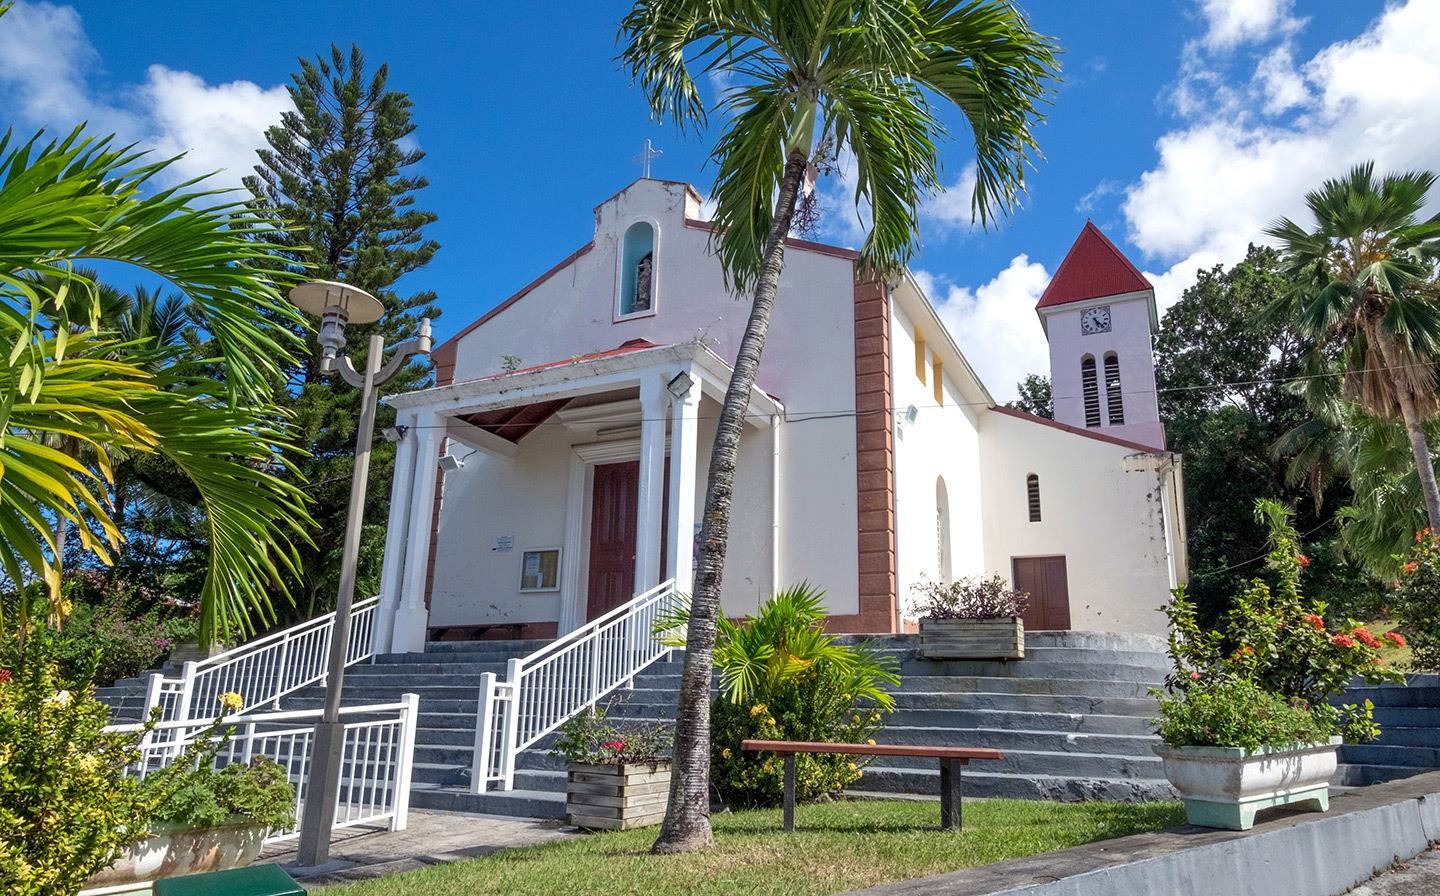 Deshaies church in Basse-Terre, Guadeloupe